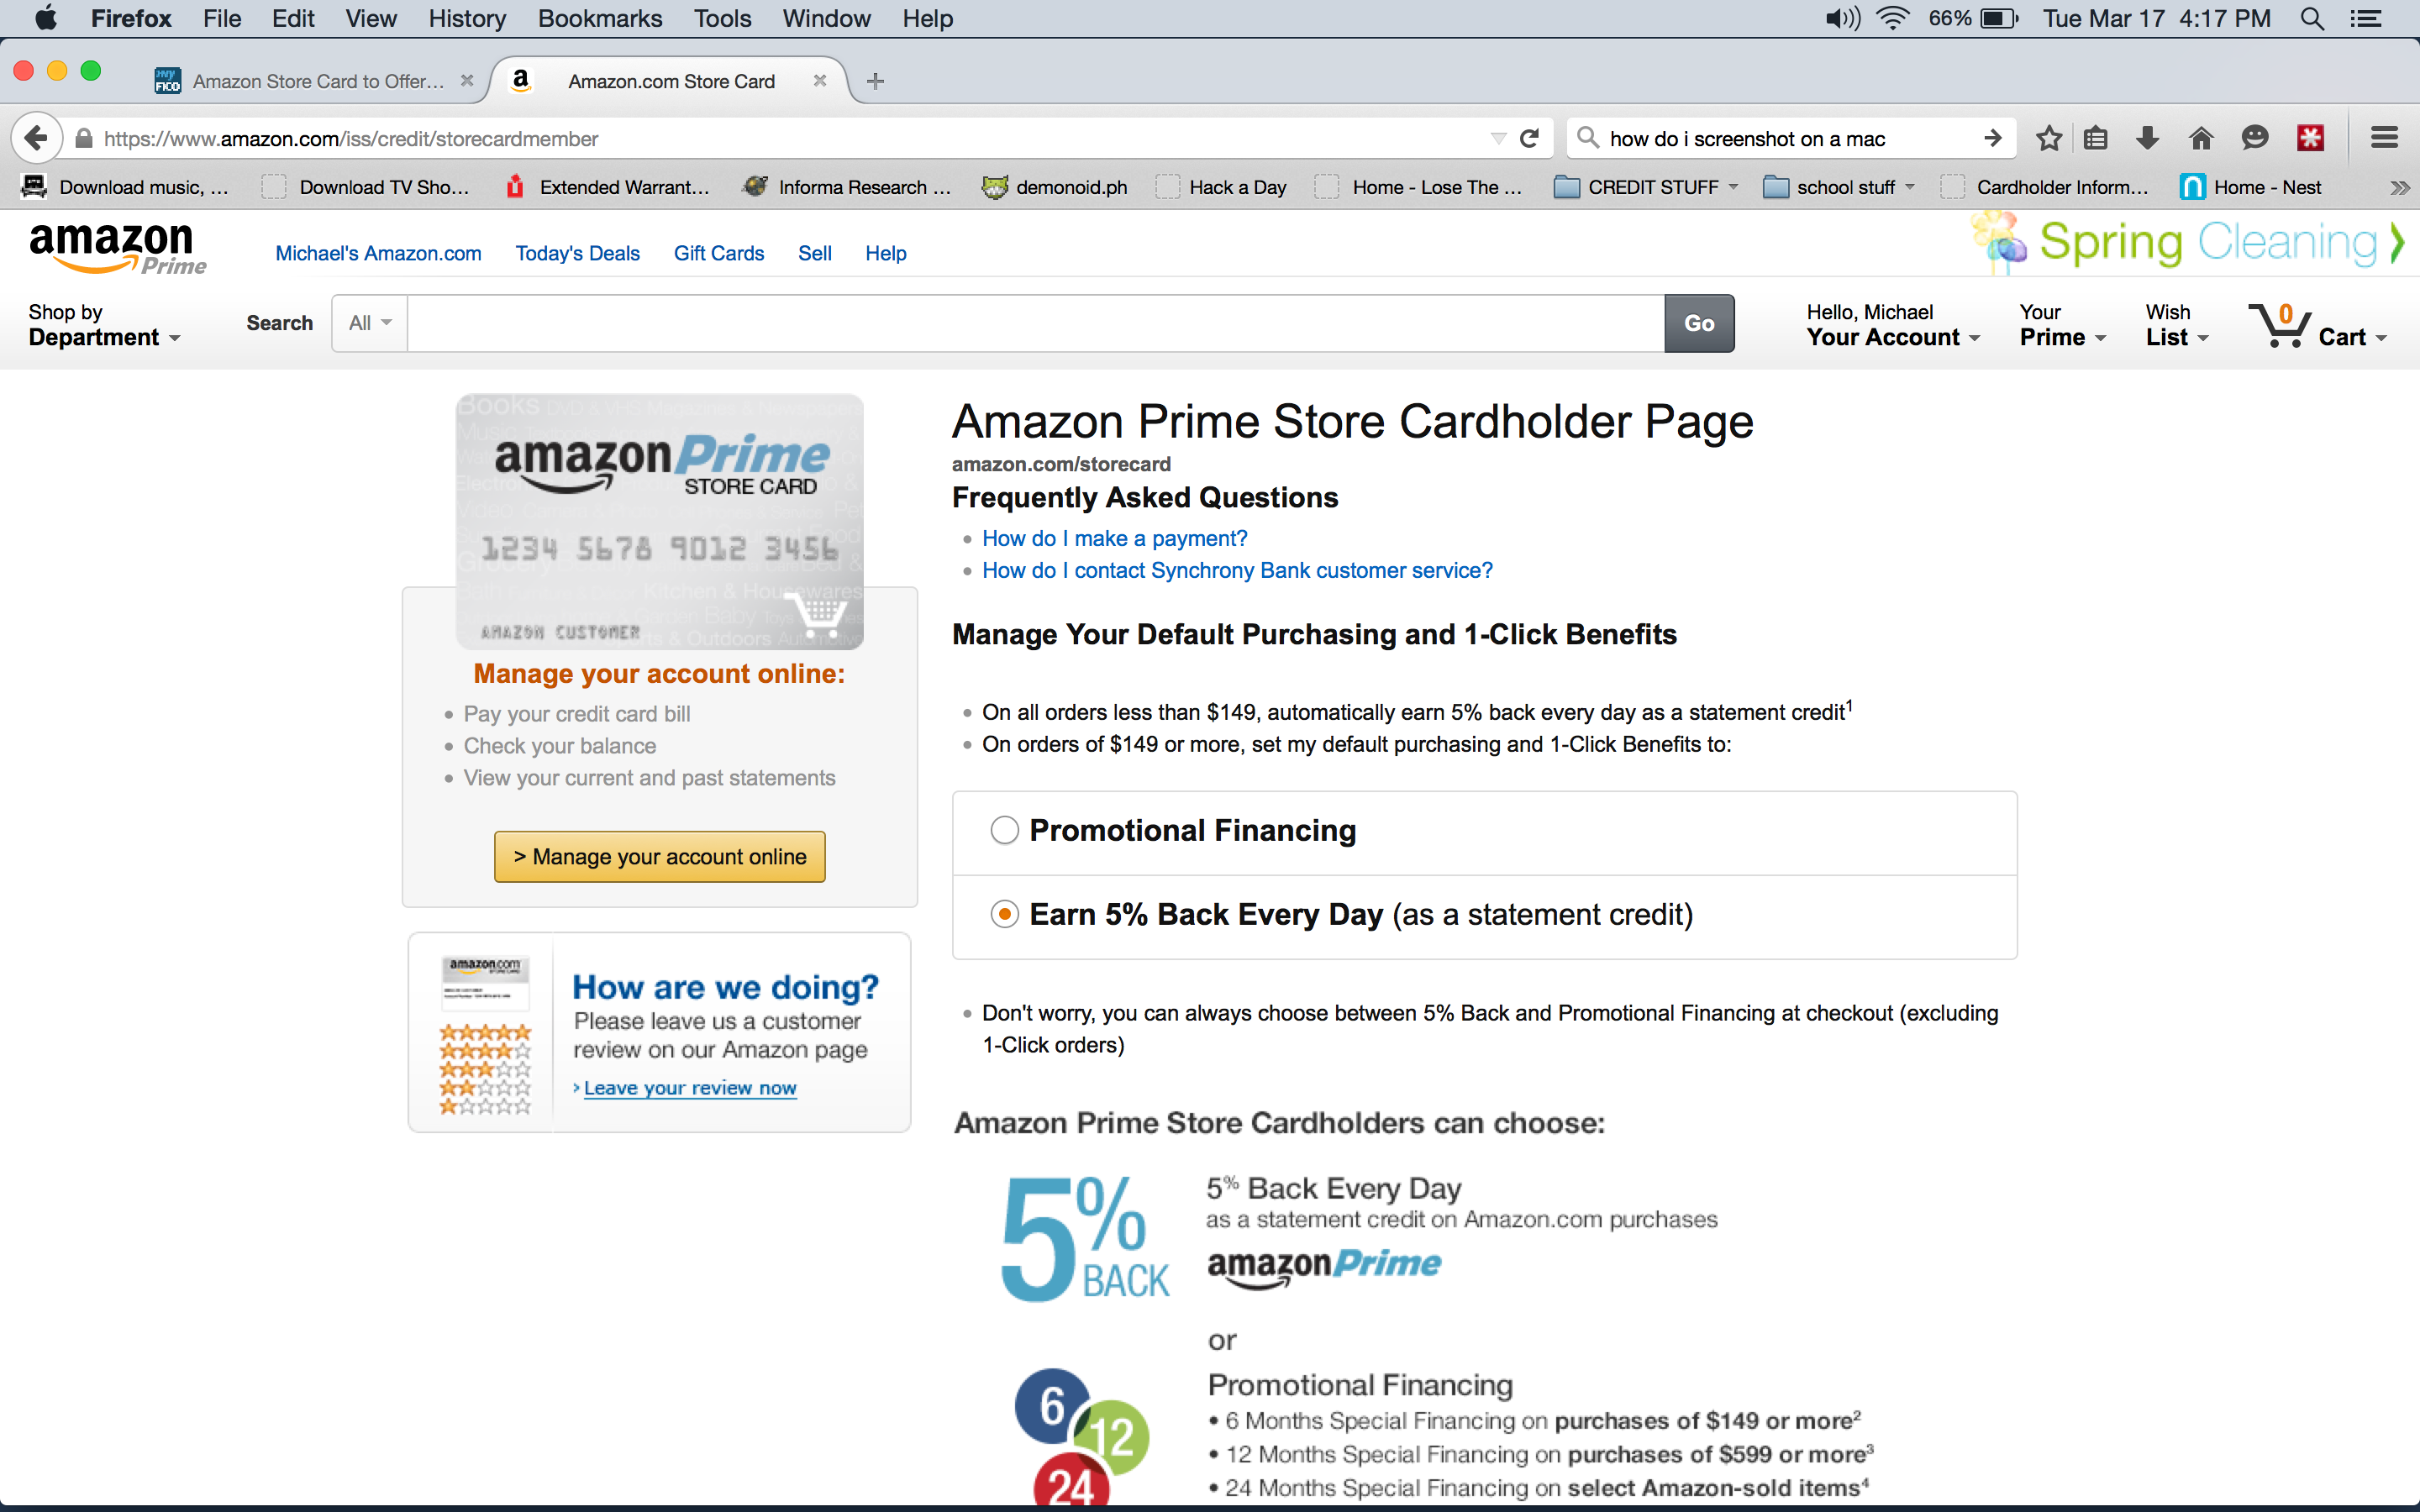 Amazon Store Card to Offer 11% Cash back on everyda - Page 11